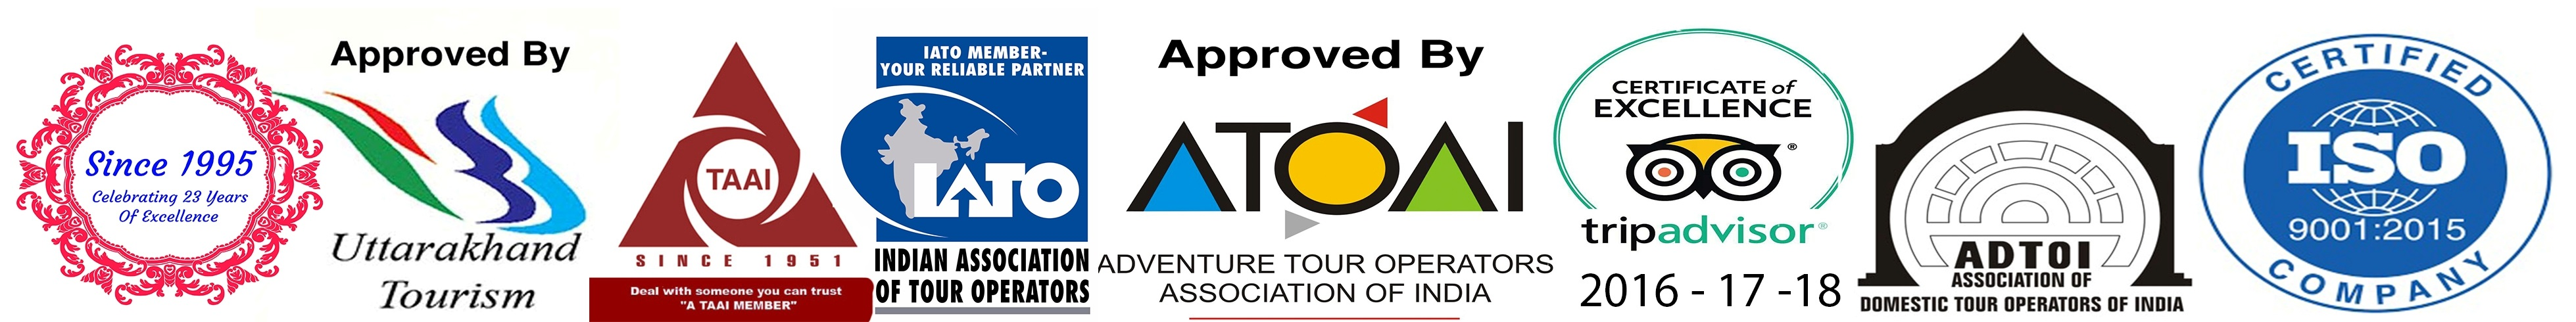 ISO Certified India Travel Company